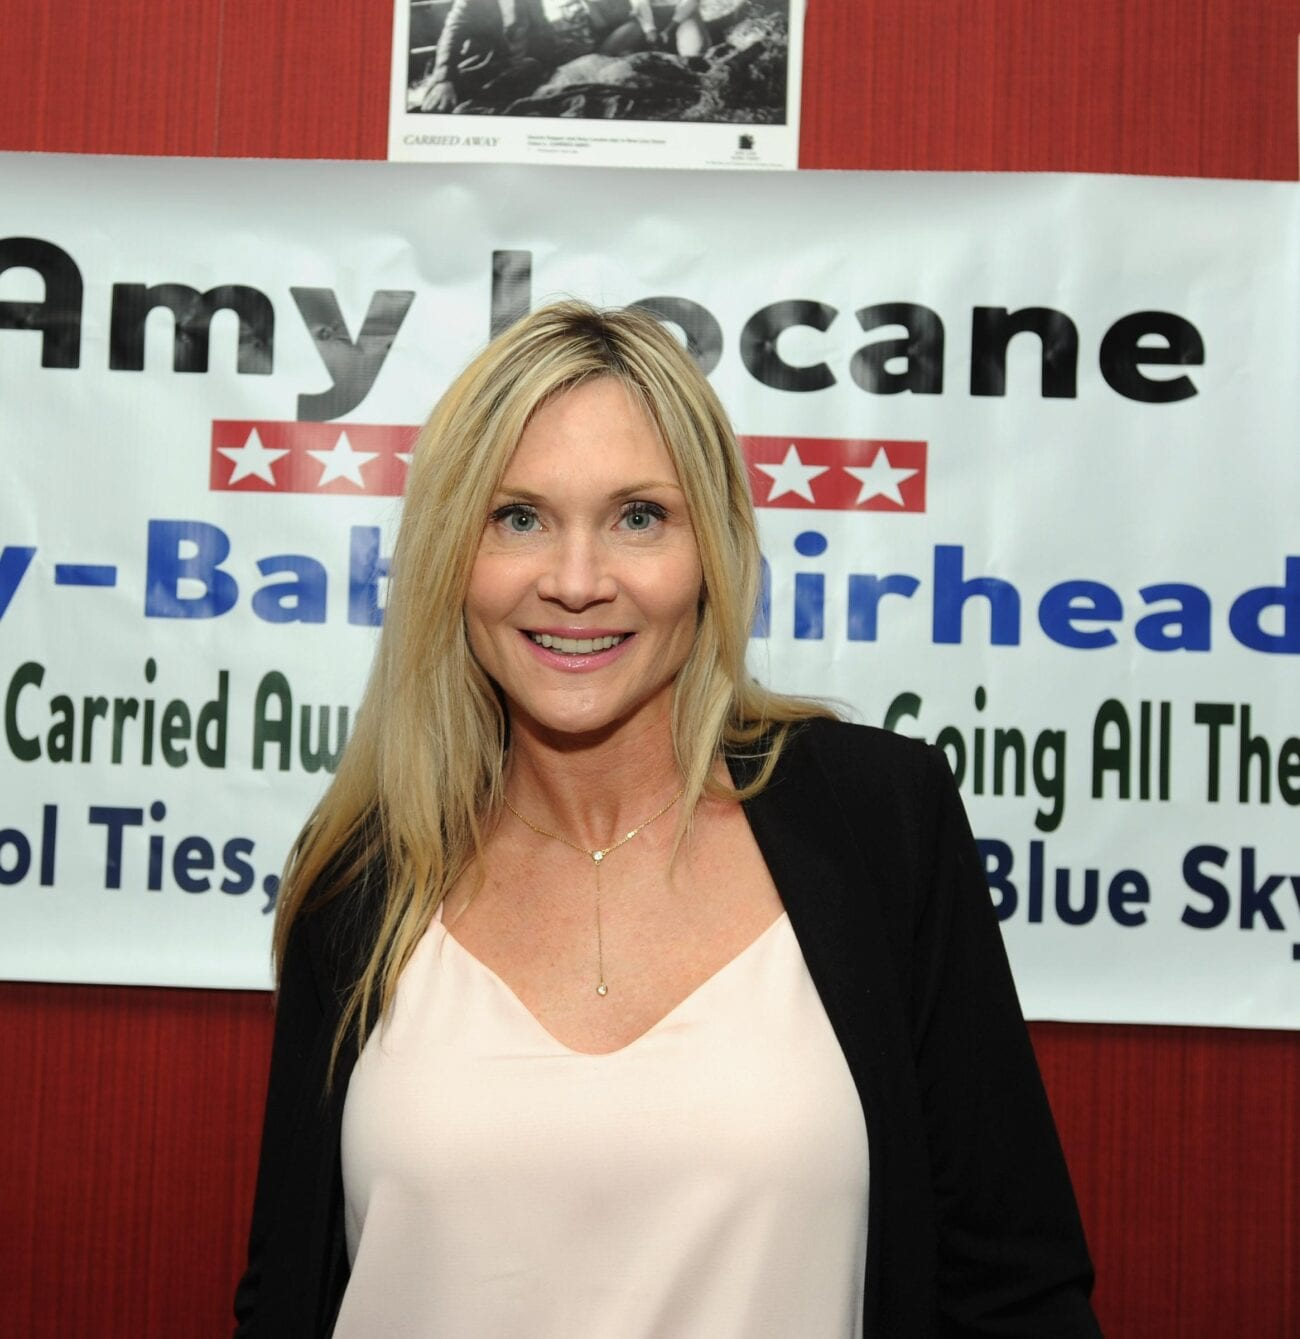 Amy Locane, best known for her work on 'Melrose Place' has been arrested. Here's what we know about the alleged crime.